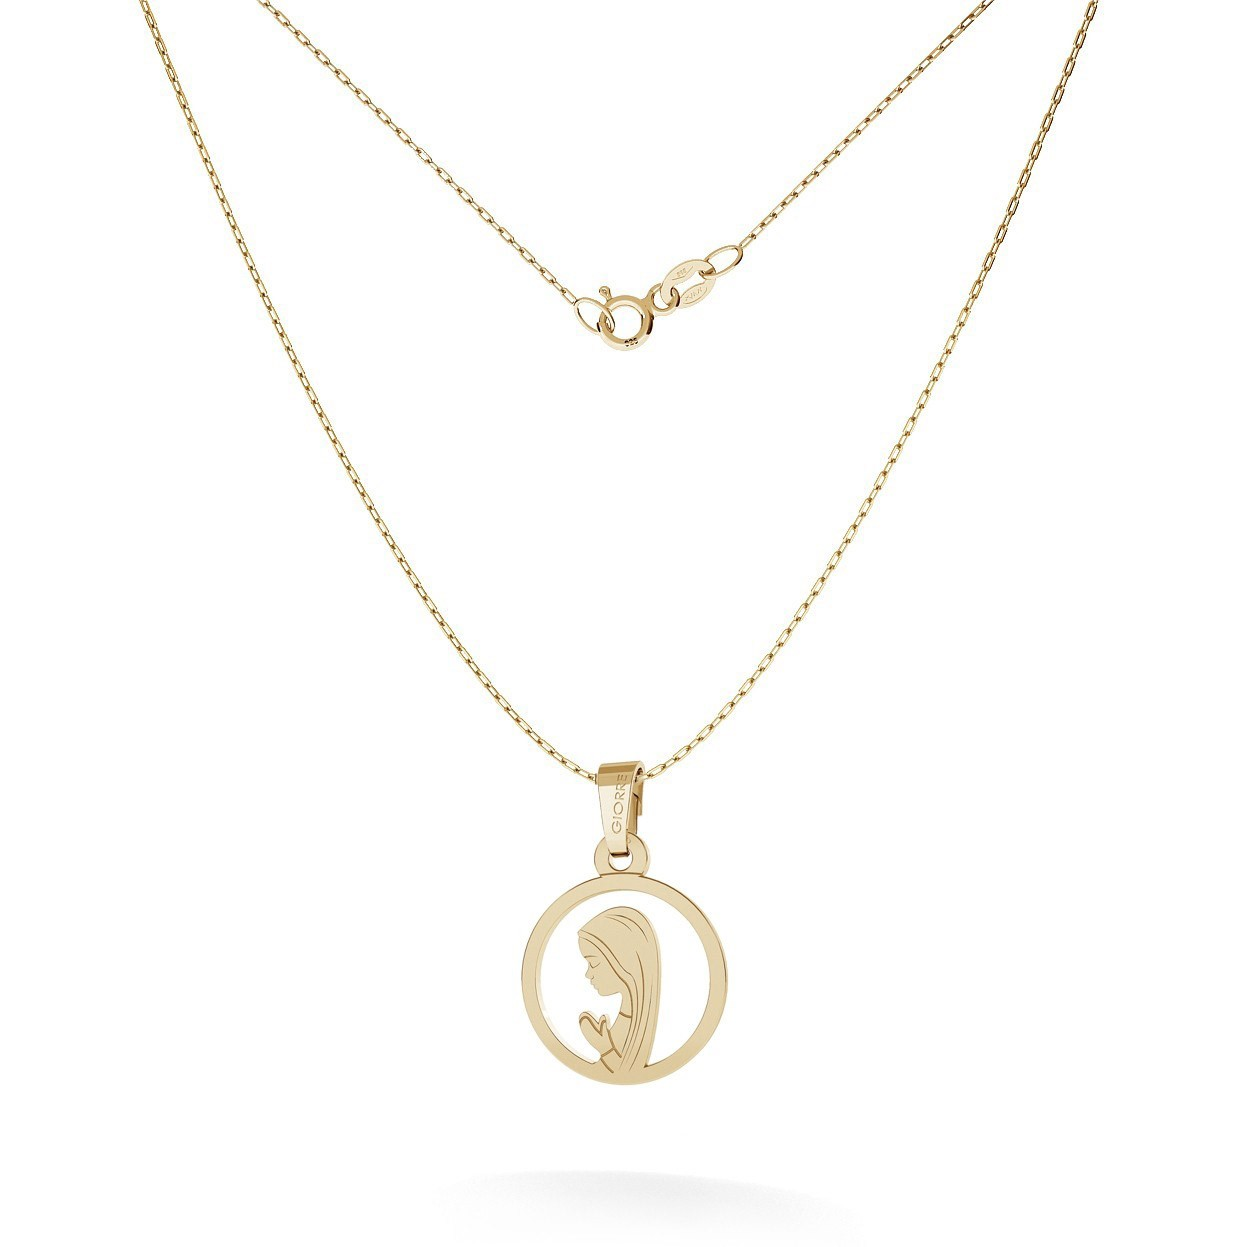 OUR LADY GOLDEN PENDANT 14K, GIORRE